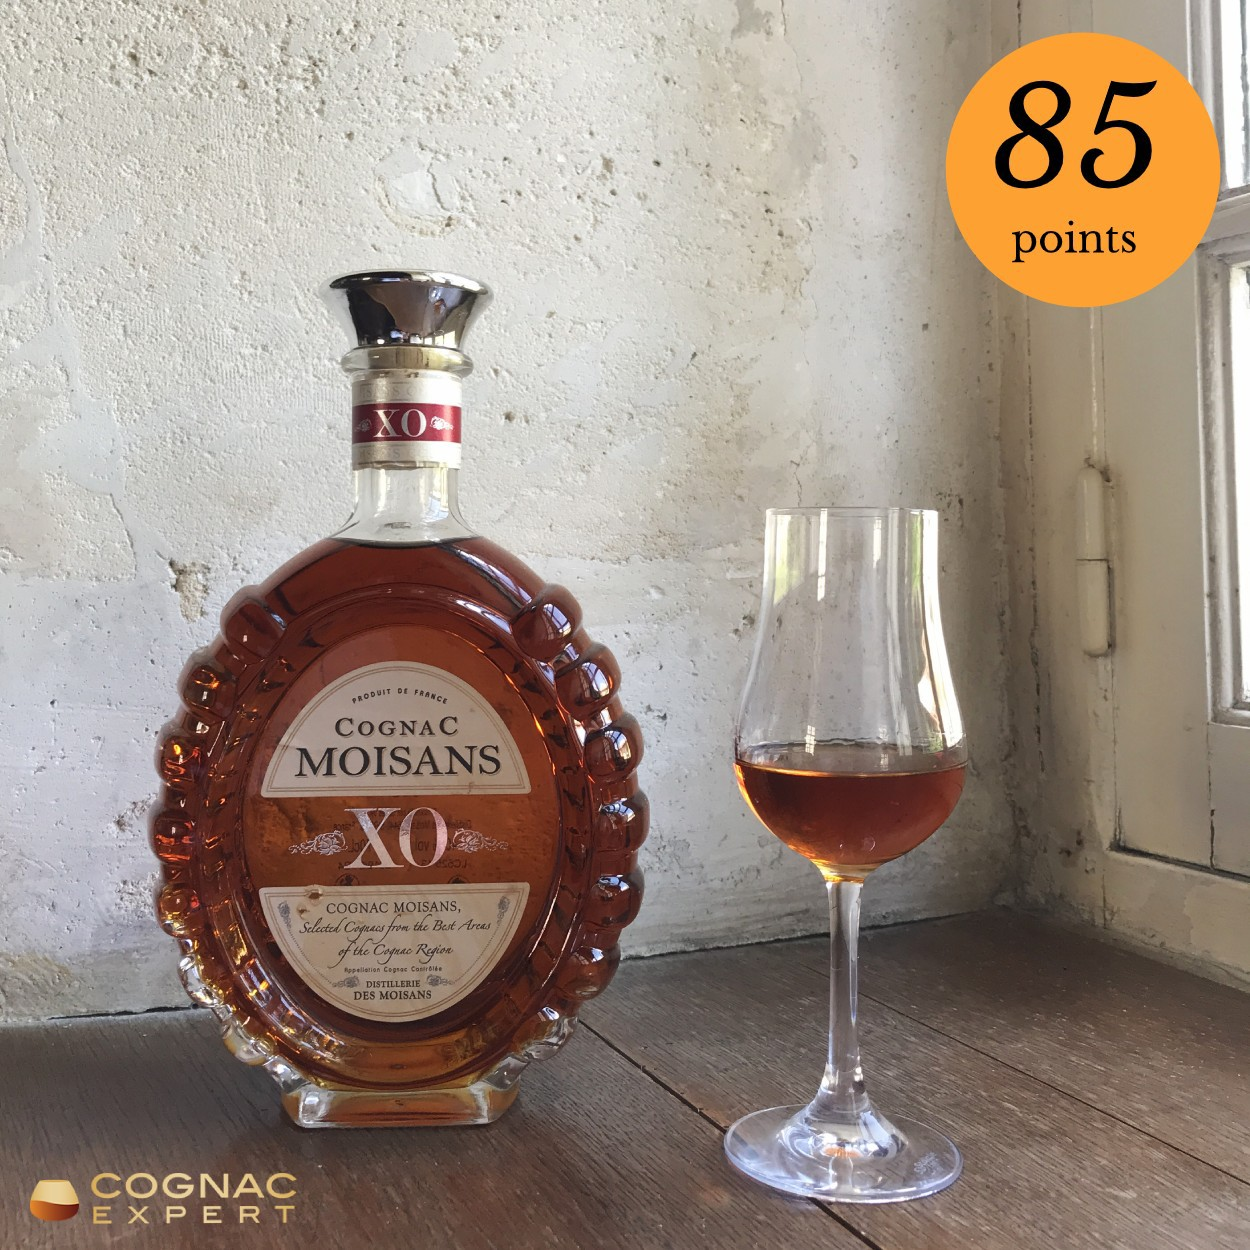 Moisons XO Cognac and glass